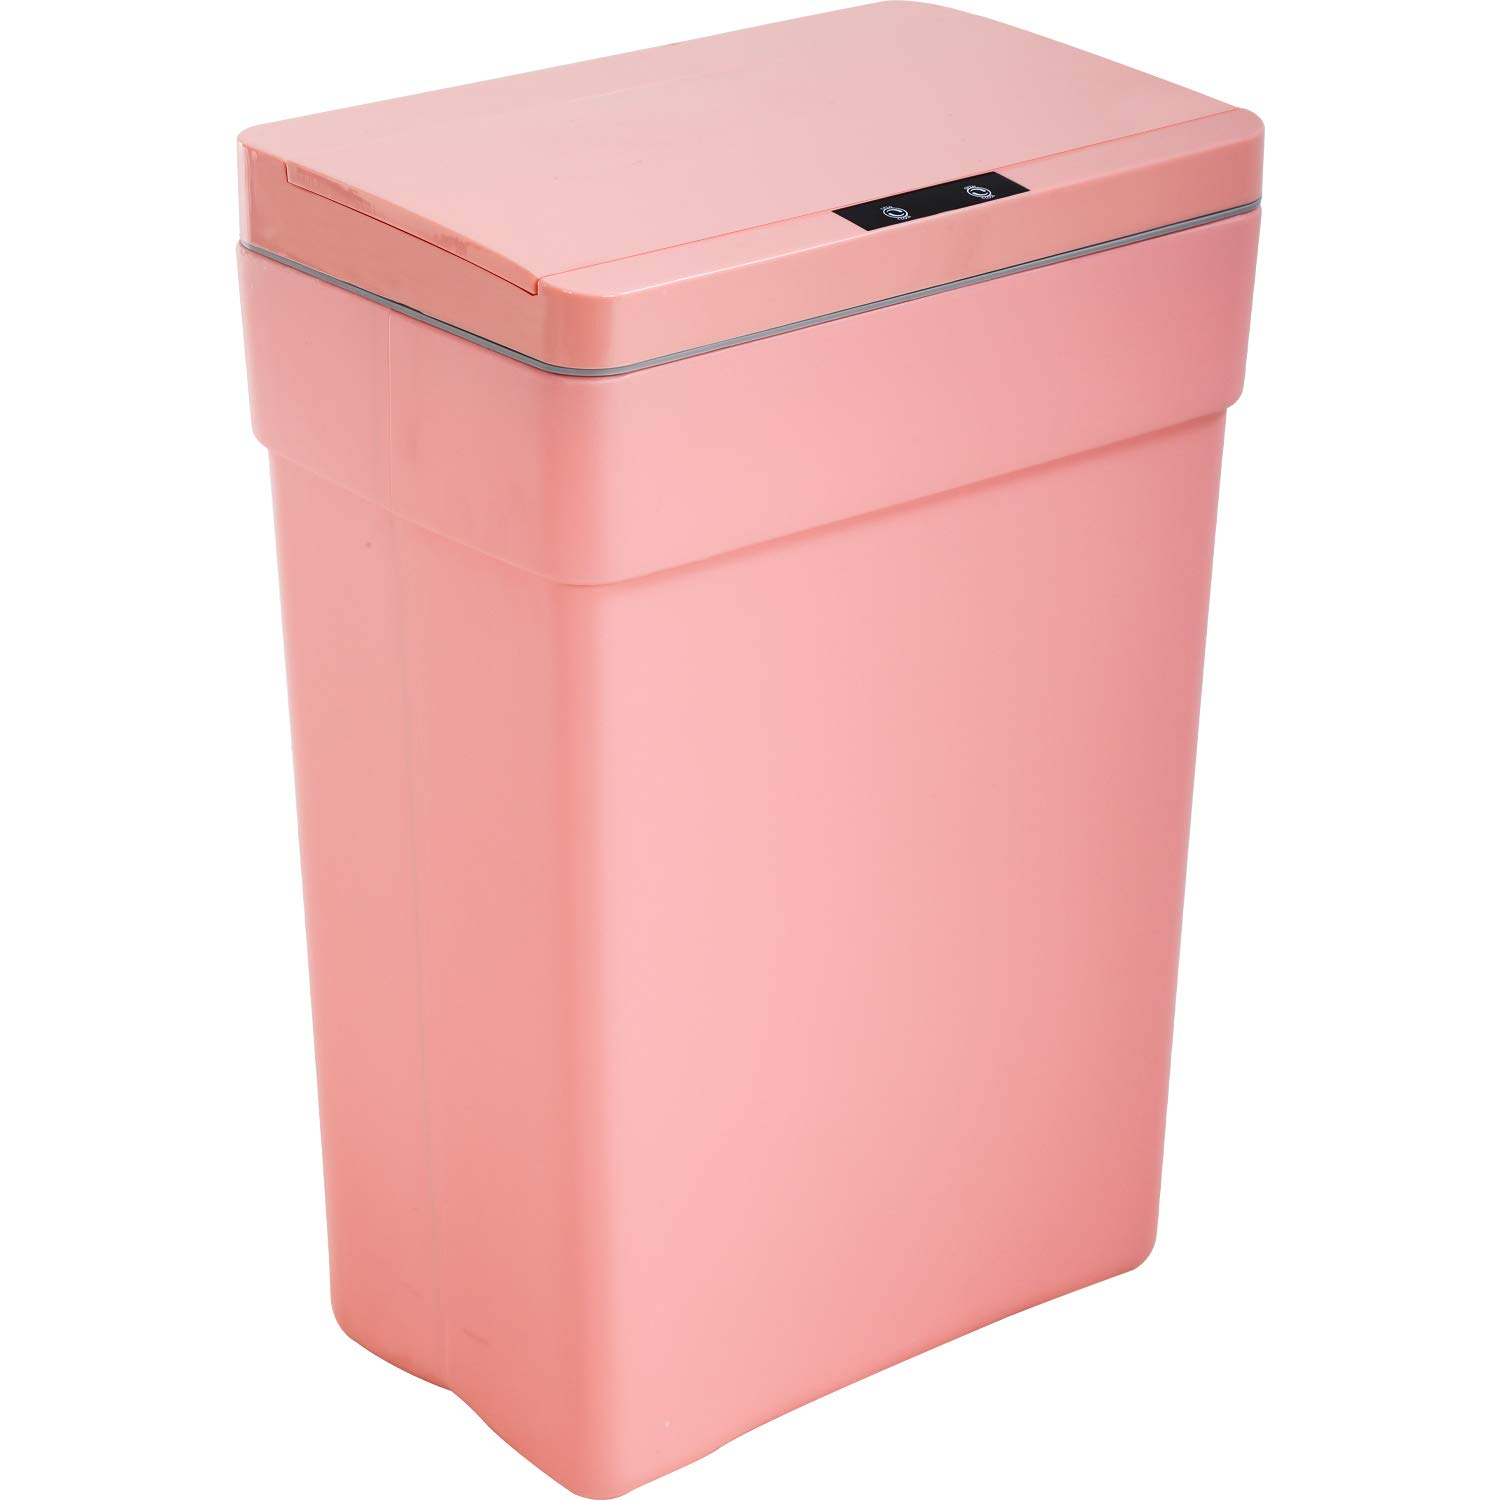 13 Gallon Trash Can Plastic Kitchen Trash Can Automatic Touch Free High Capacity Garbage Can With Lid For Bedroom Buy Online In Dominica At Dominica Desertcart Com Productid 197950384